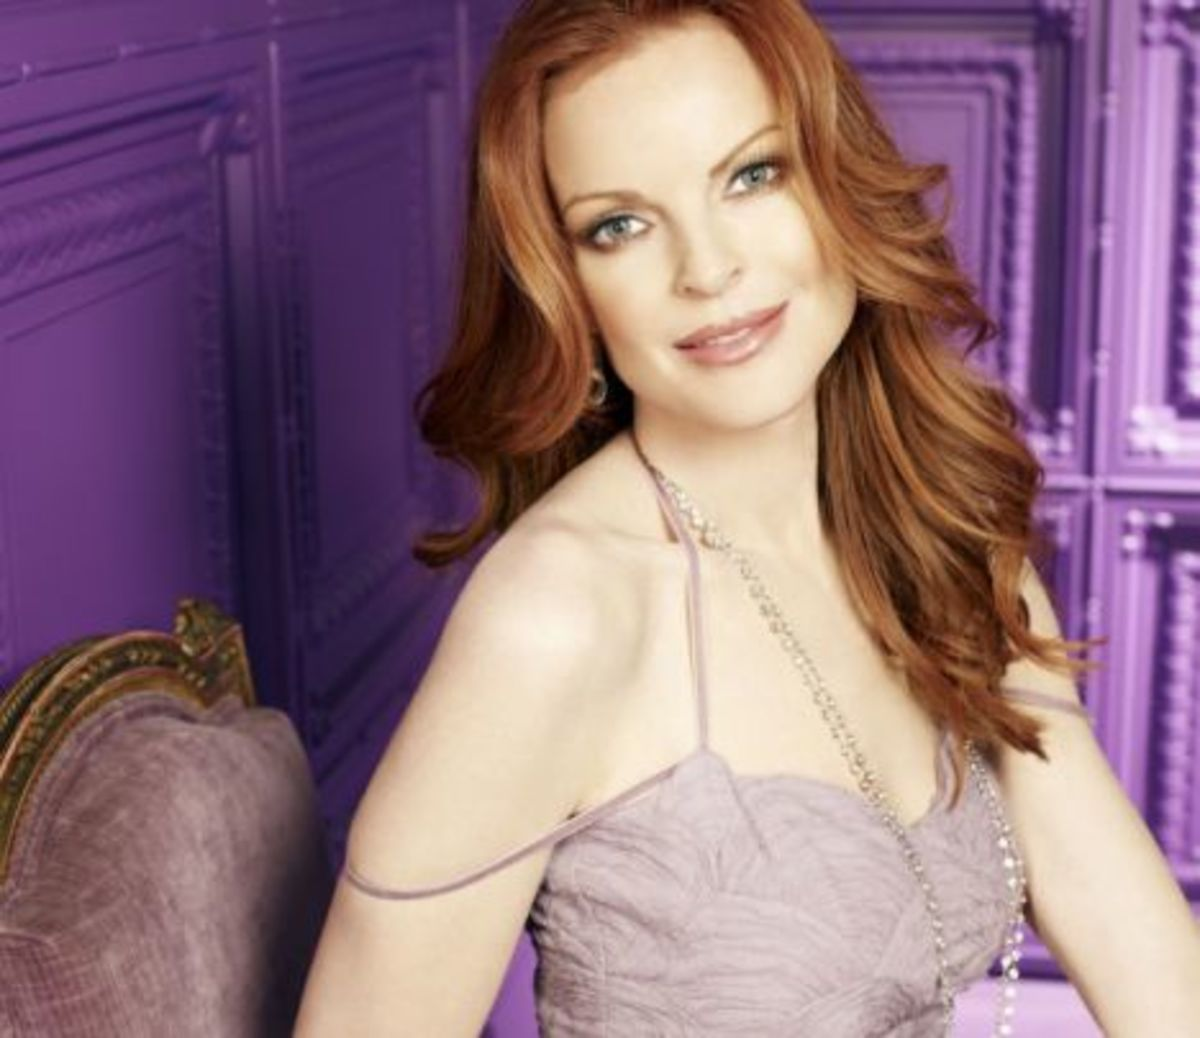 skin tone and red hair, Lavender dress. Clothing Colors for Fair Skin